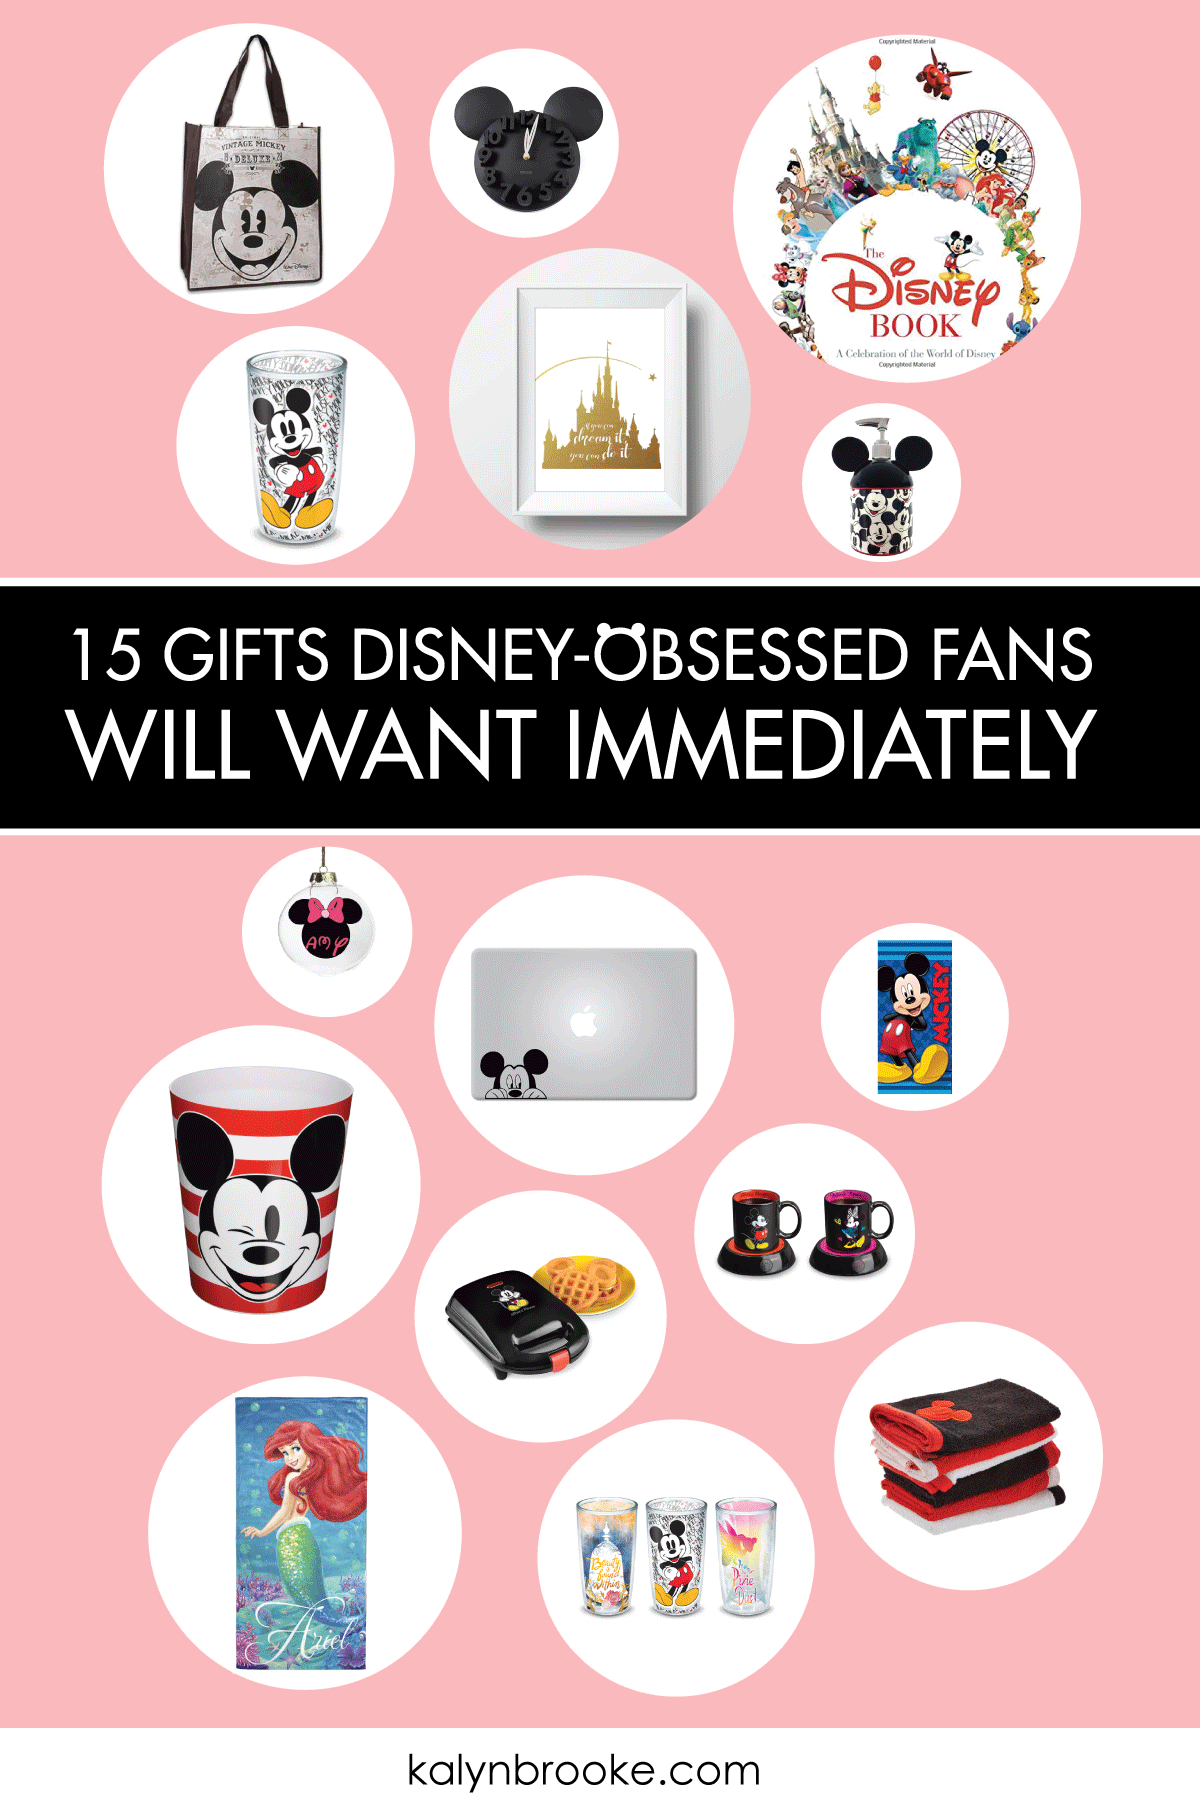 Use this Disney Gift Guide as your one stop shop for the Disney-obsessed fan in your life. With 15 awesome and affordable options to reignite that one-of-a-kind Disney magic, you're sure to make everyone feel like a kid again! #disneygiftideas #disneyobsessed #disney #giftideas